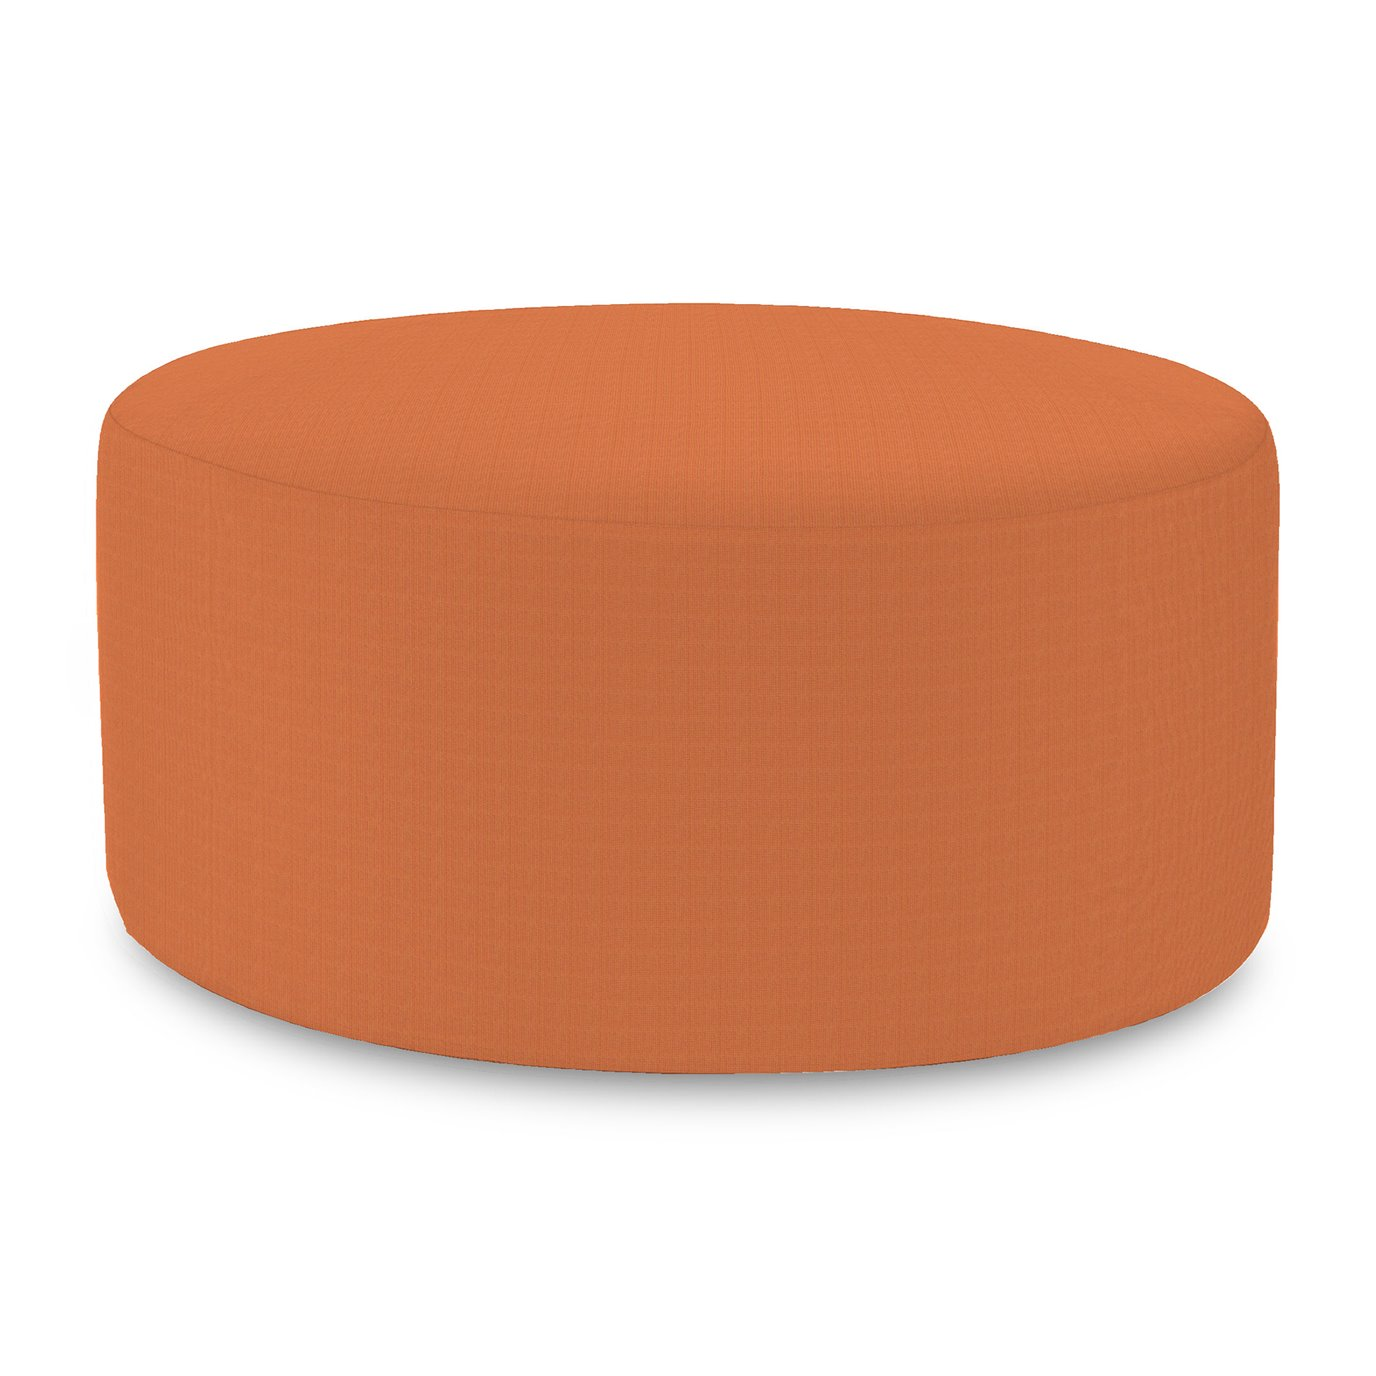 Howard Elliott Universal Round Ottoman Cover Sunbrella Outdoor Seascape Canyon - Cover Only, Base Not Included